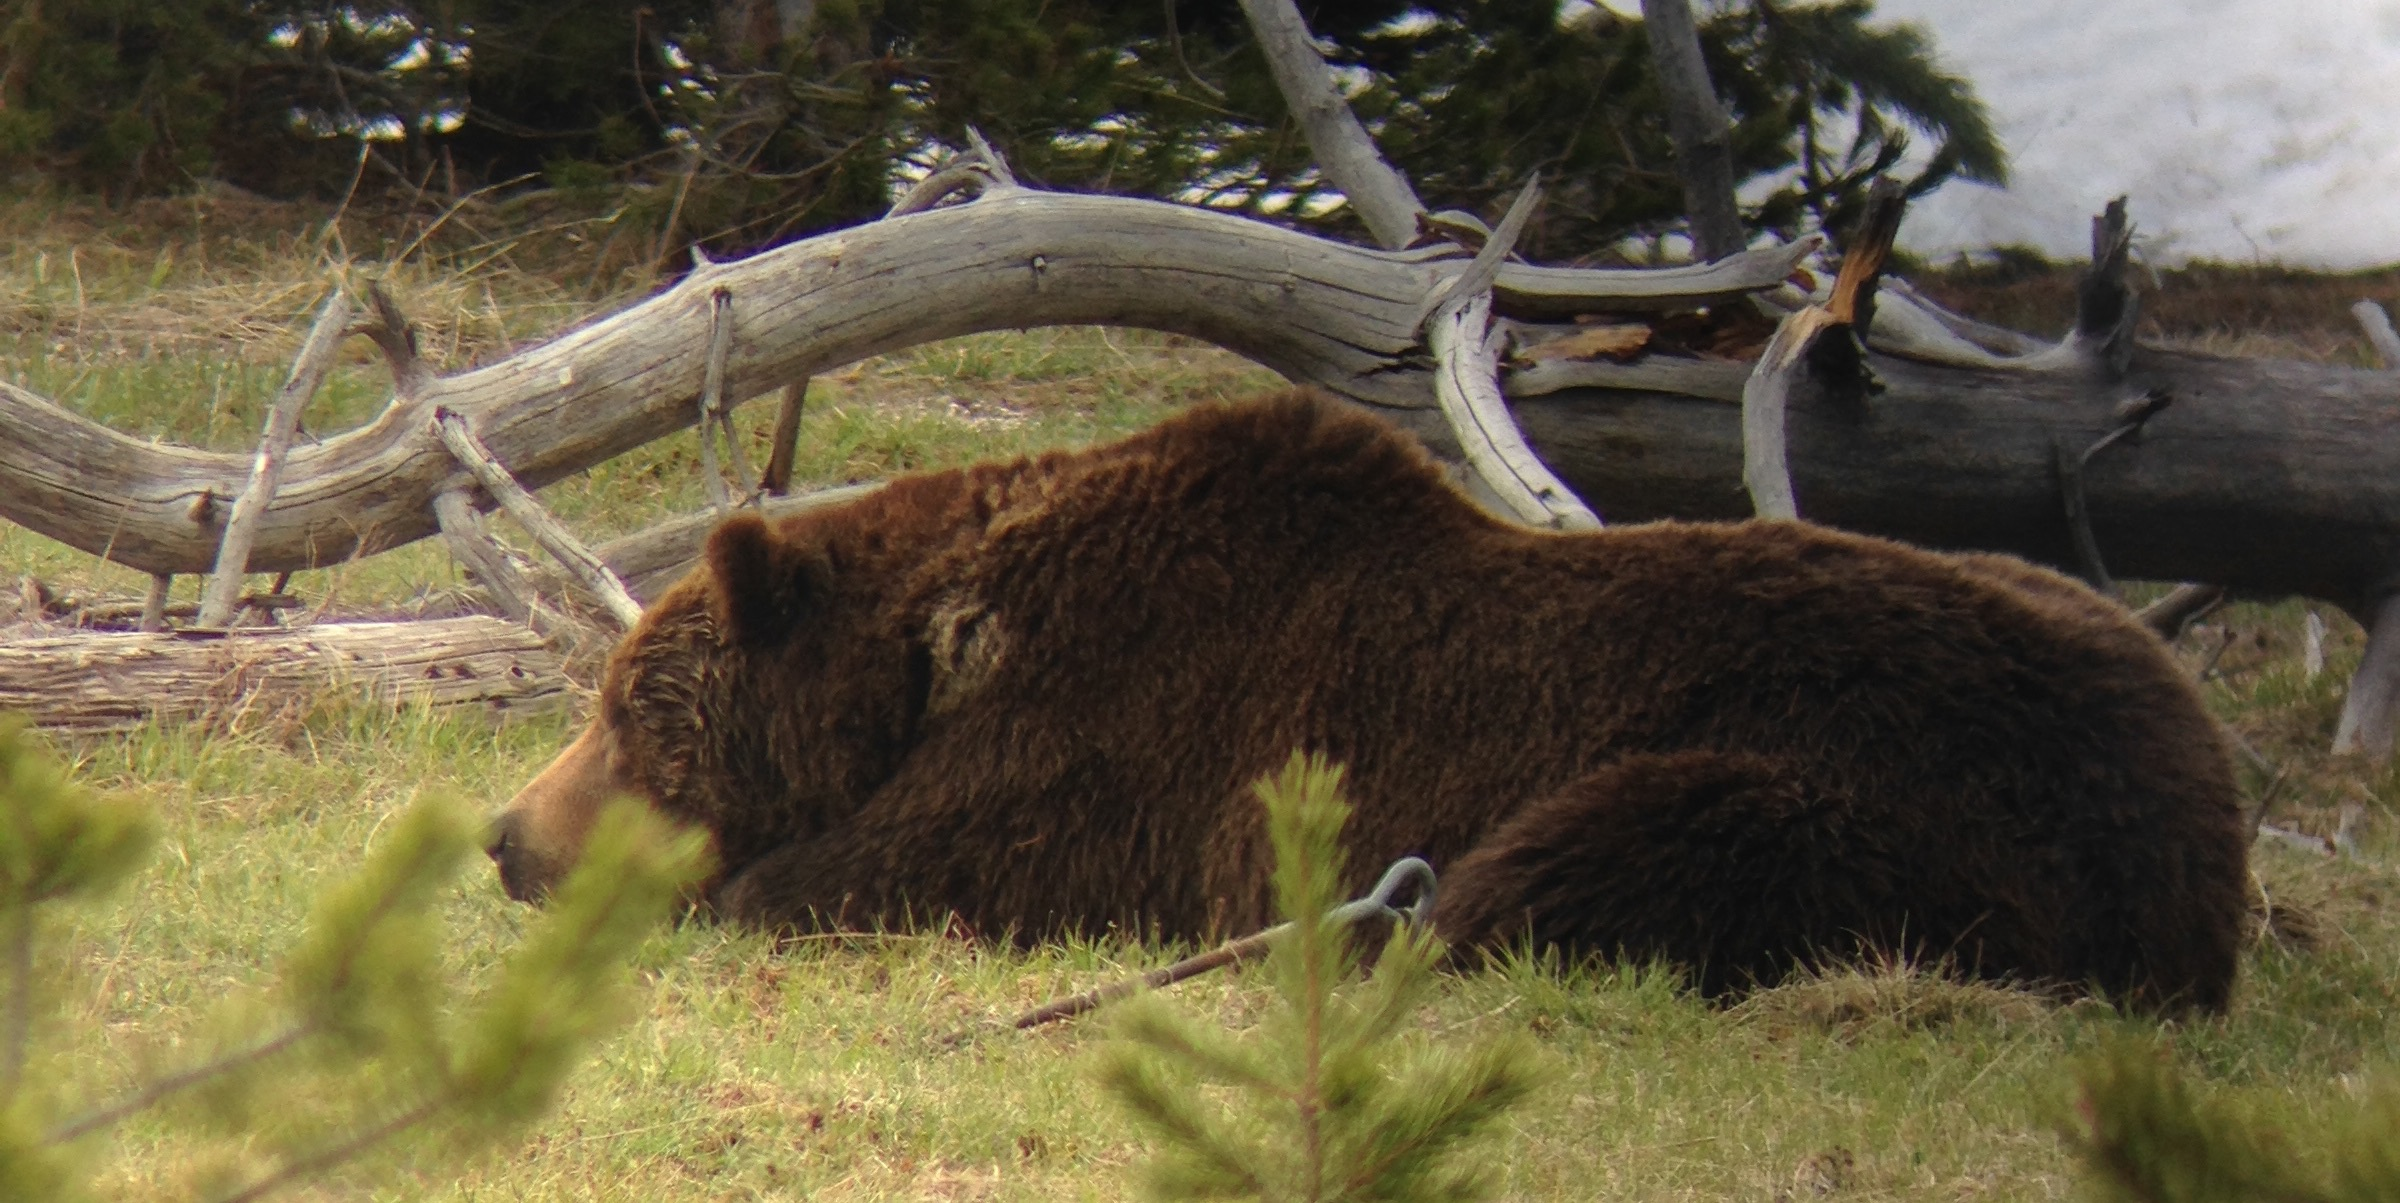 Grizzly bear hanging out in Yellowstone